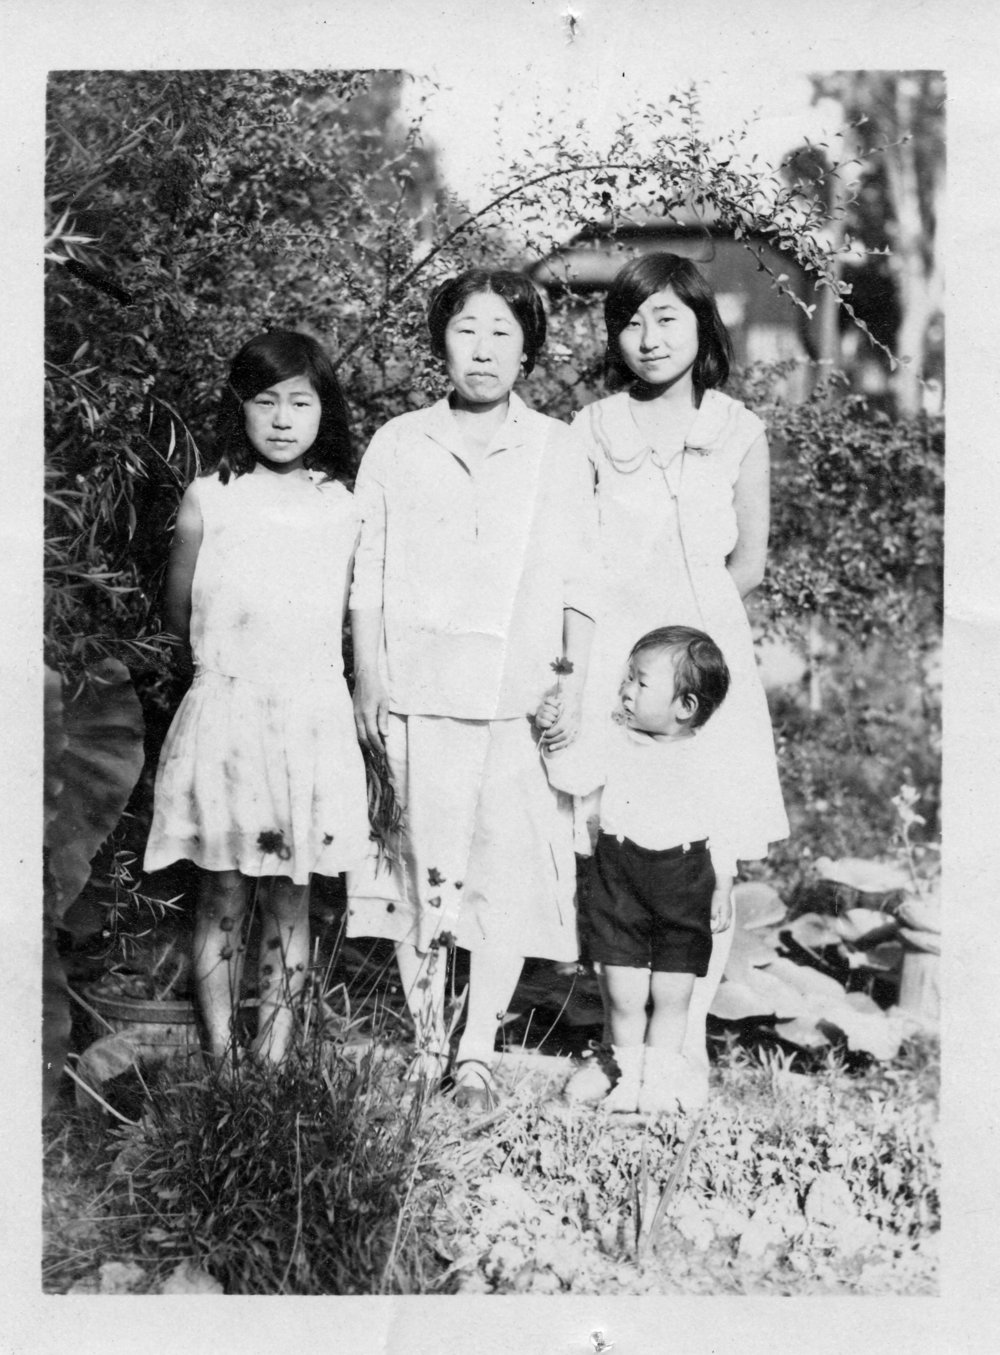 Susan standing next to her mom Helen Ahn (right).